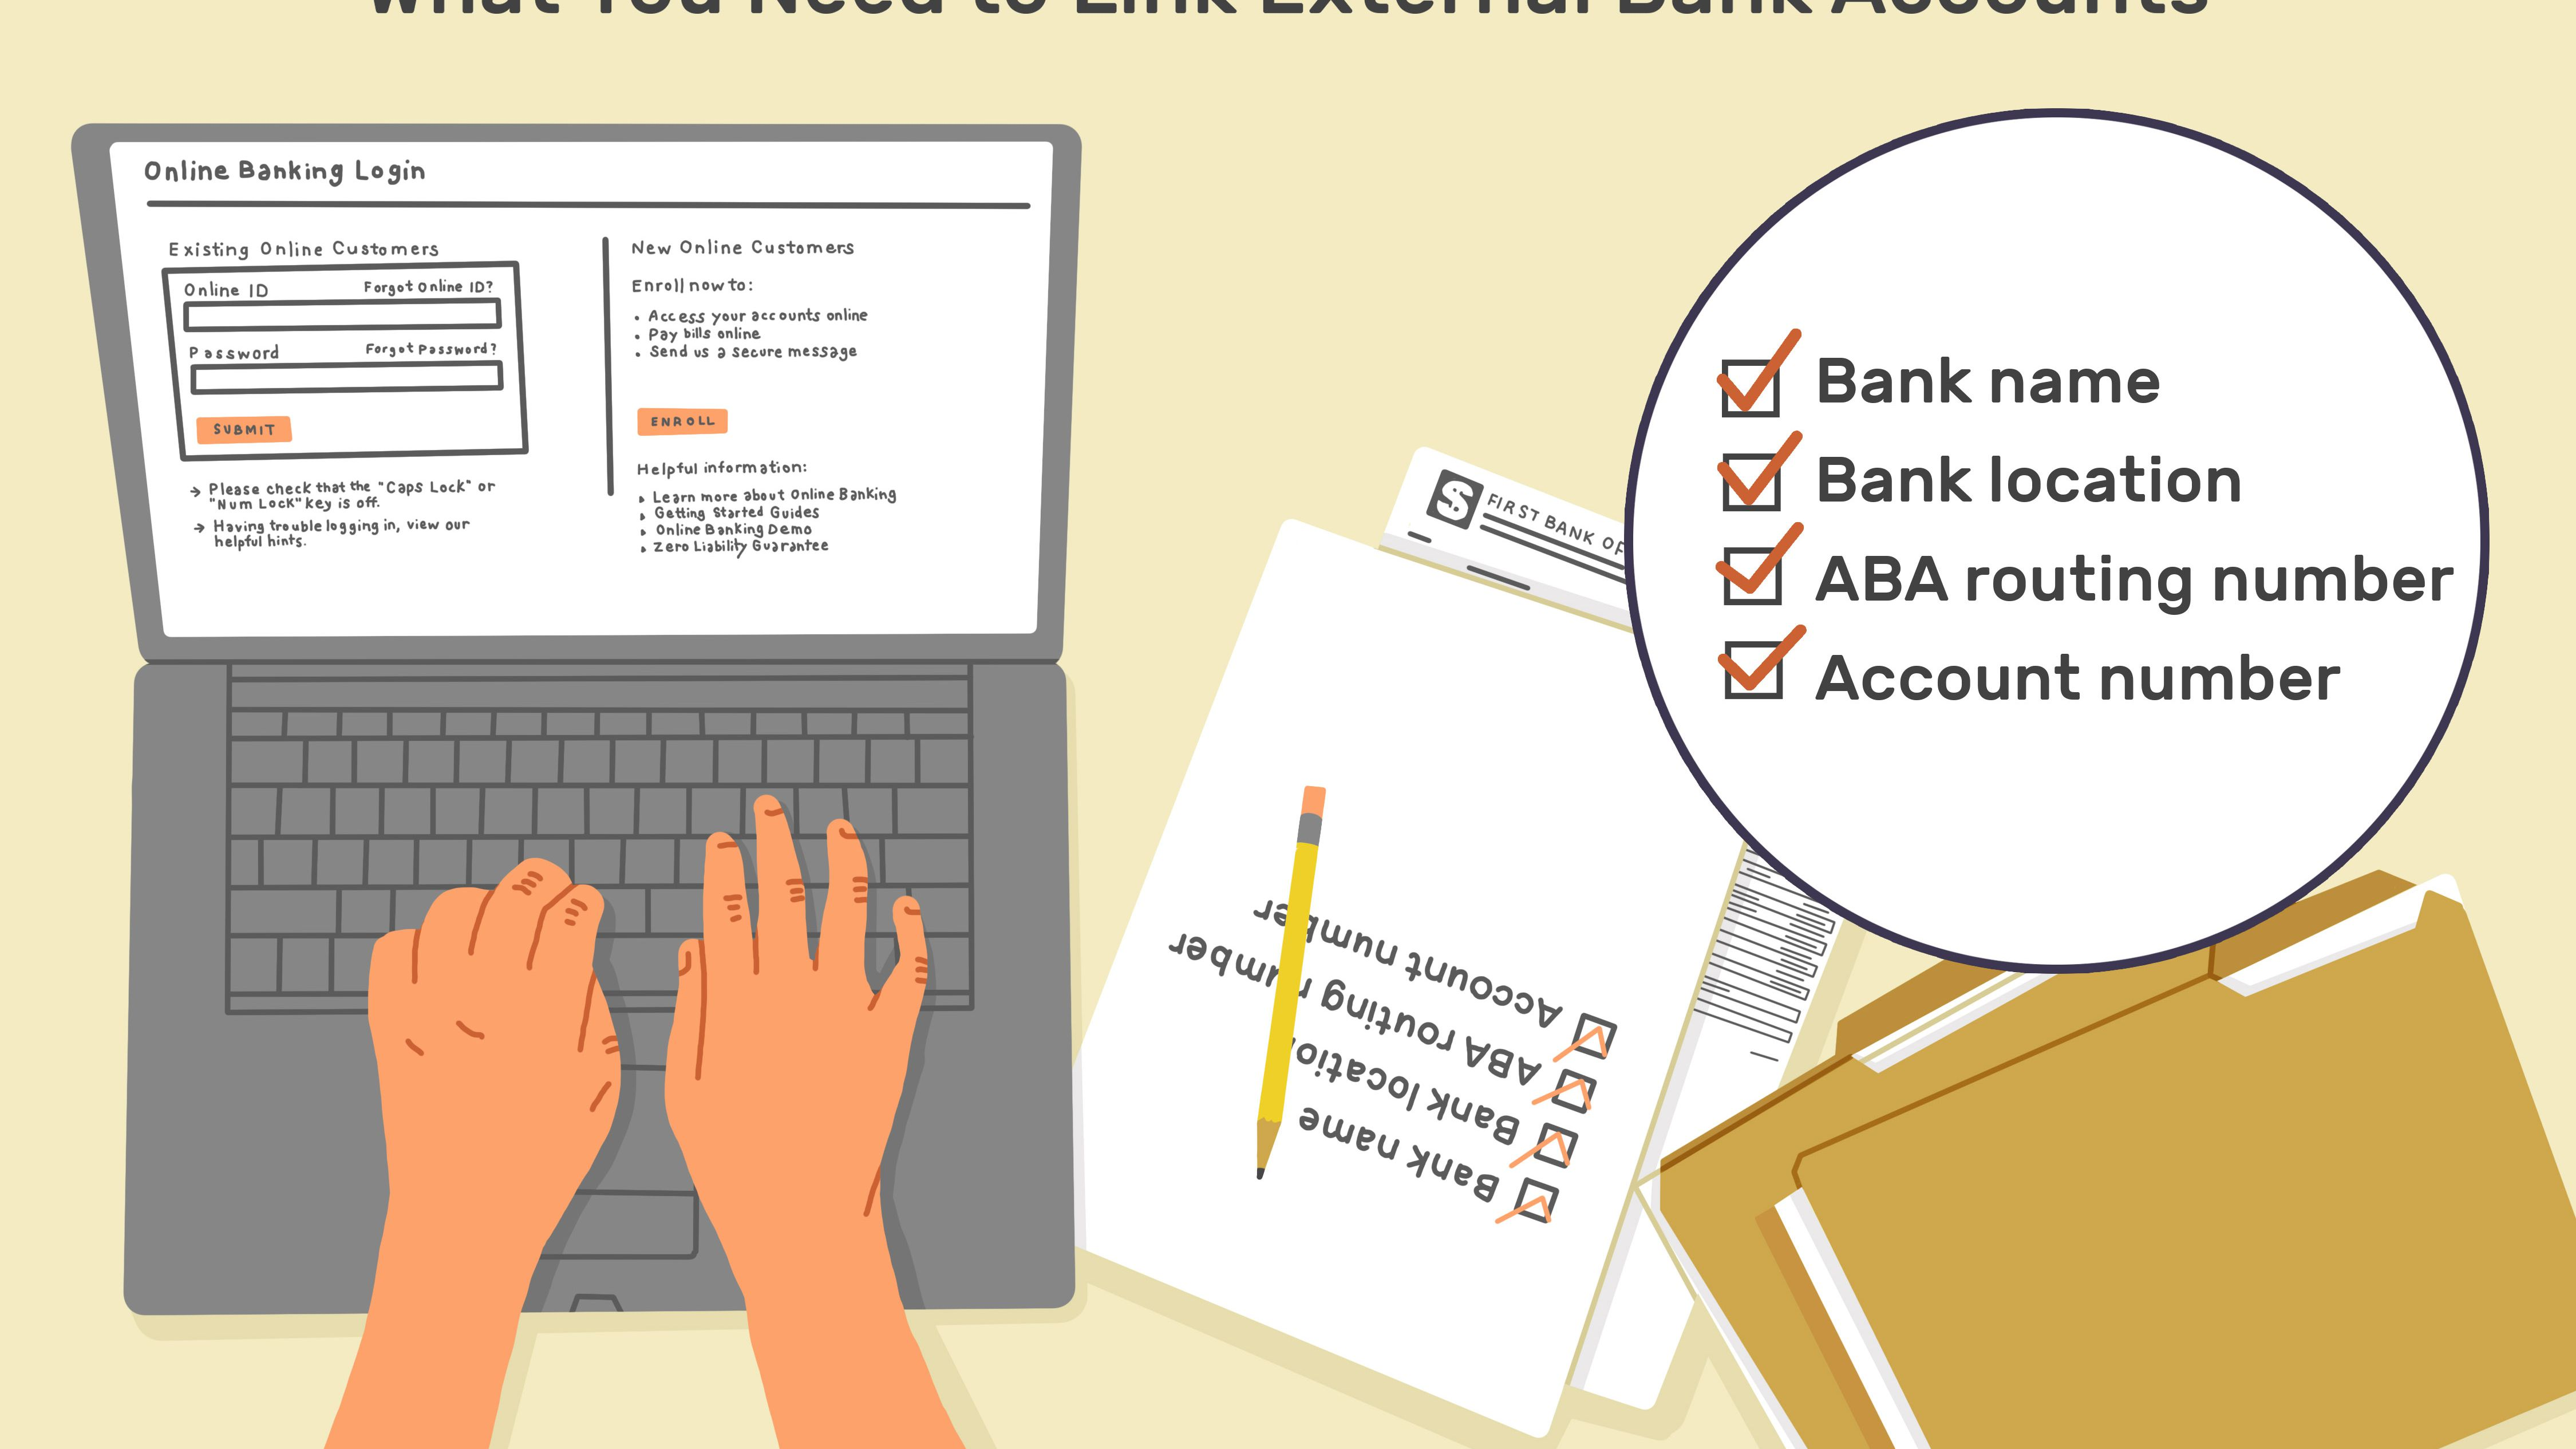 How To Link Bank Accounts For Transfers And Payments